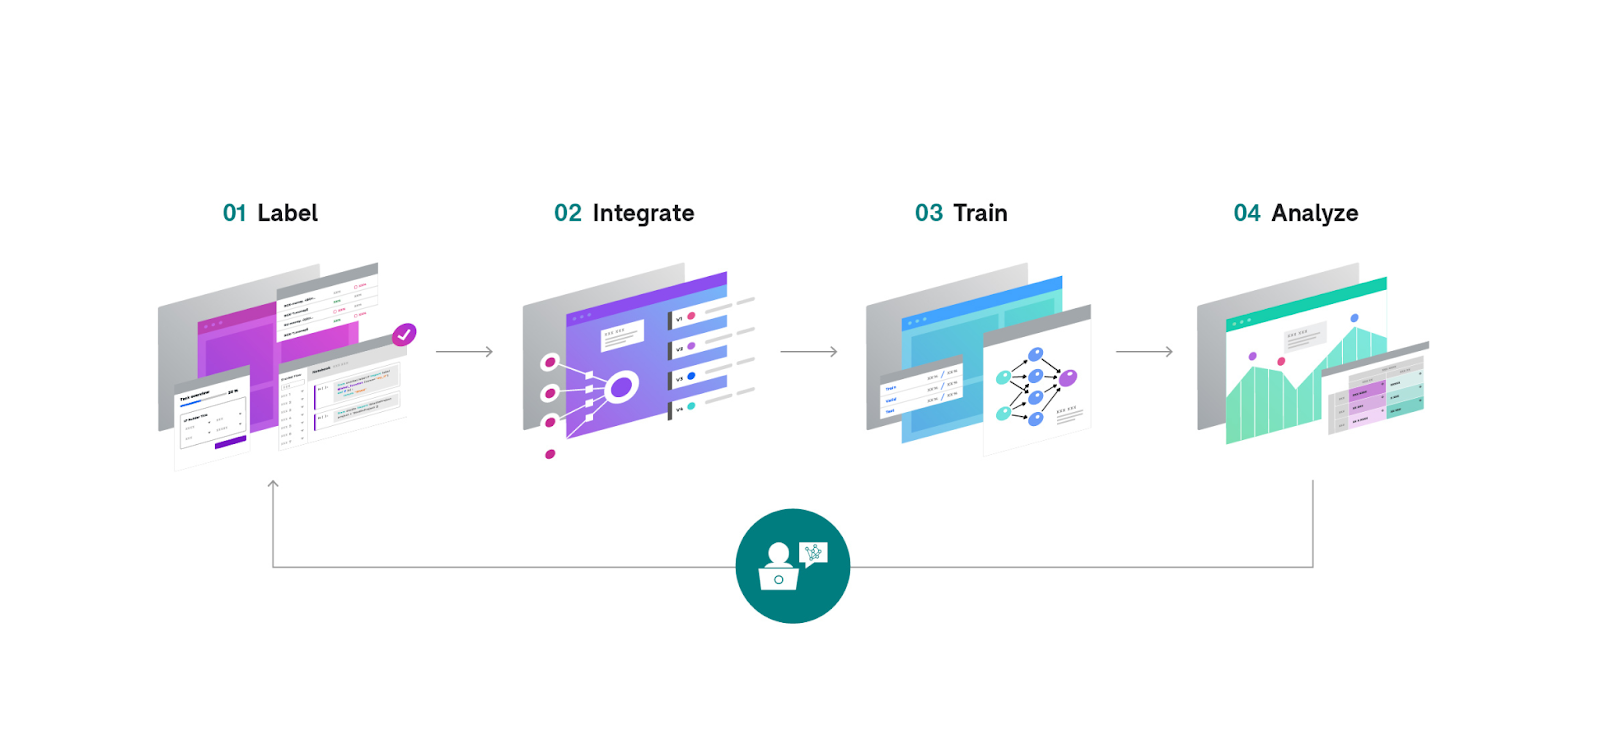 Snorkel Flow allows you to label, integrate, train and analyze your models to create end-to-end scalable AI applications for your organization